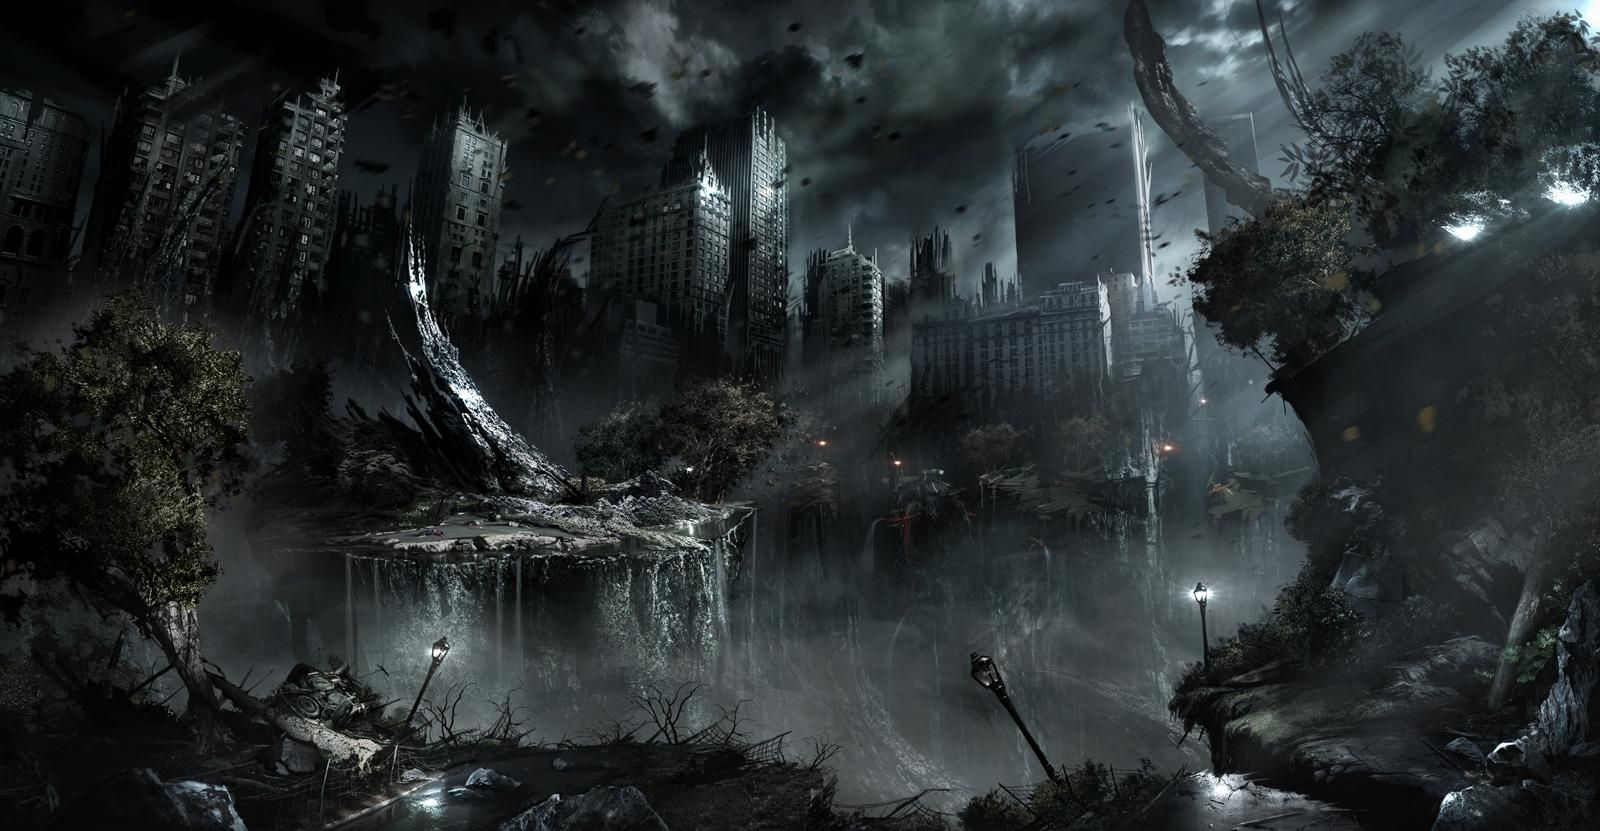 Post ApocalypticDystopian Wallpaper Dump As requested by 1600x831